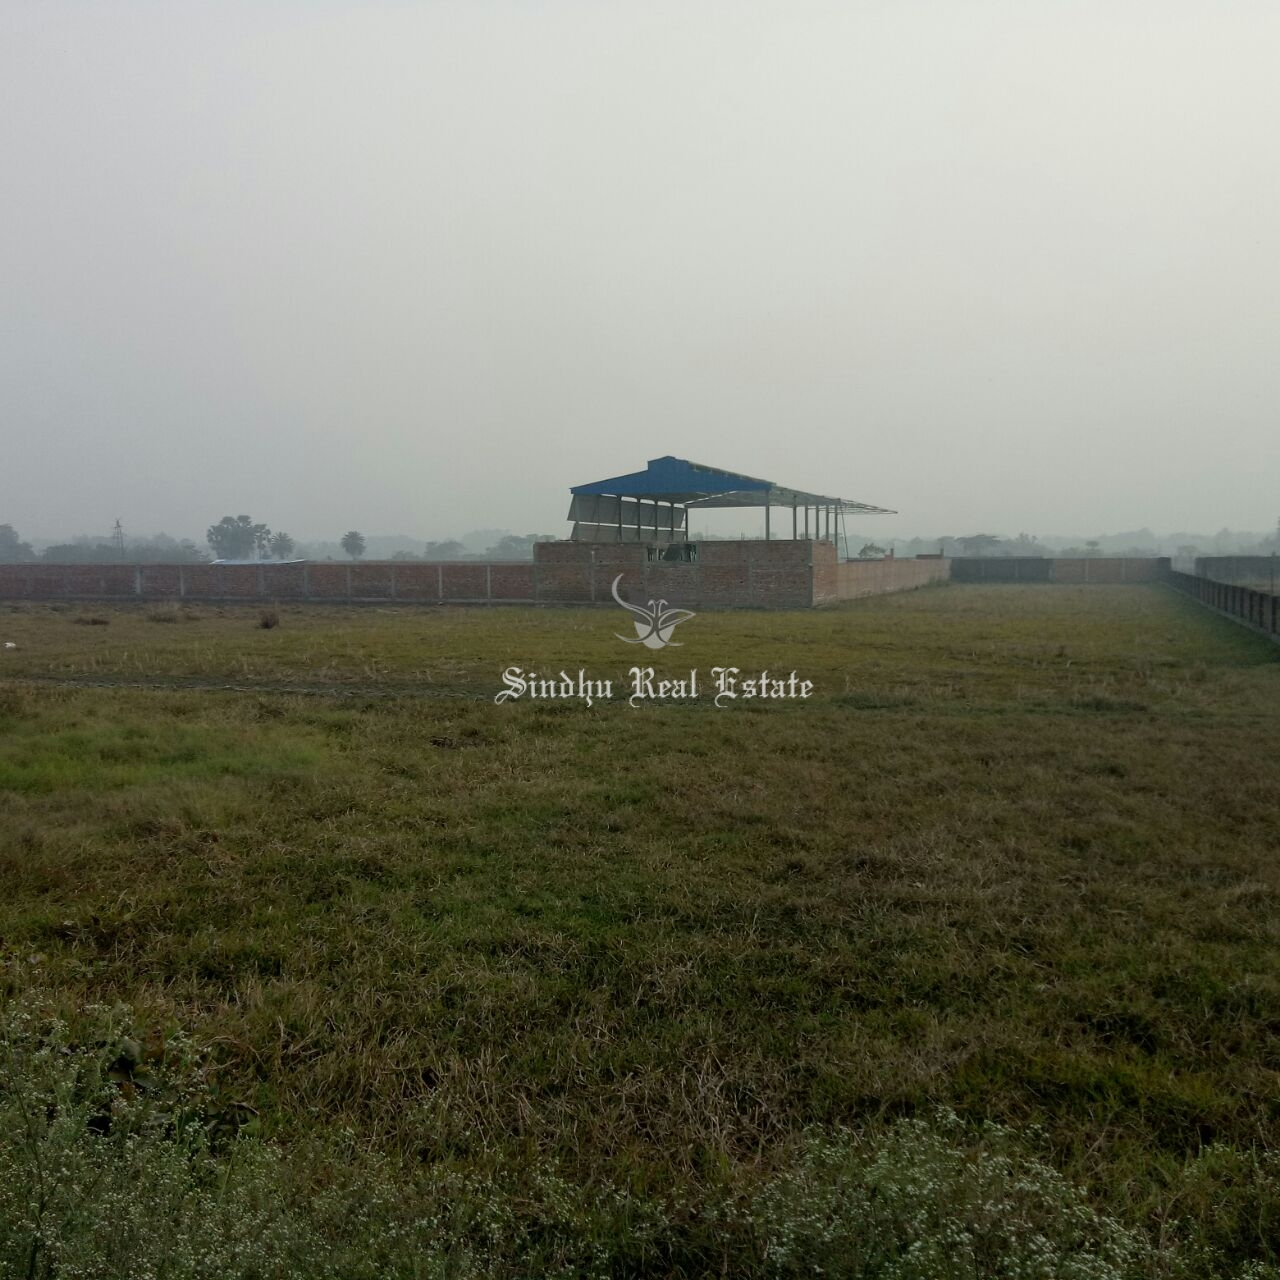 Land for sale in Bombay road